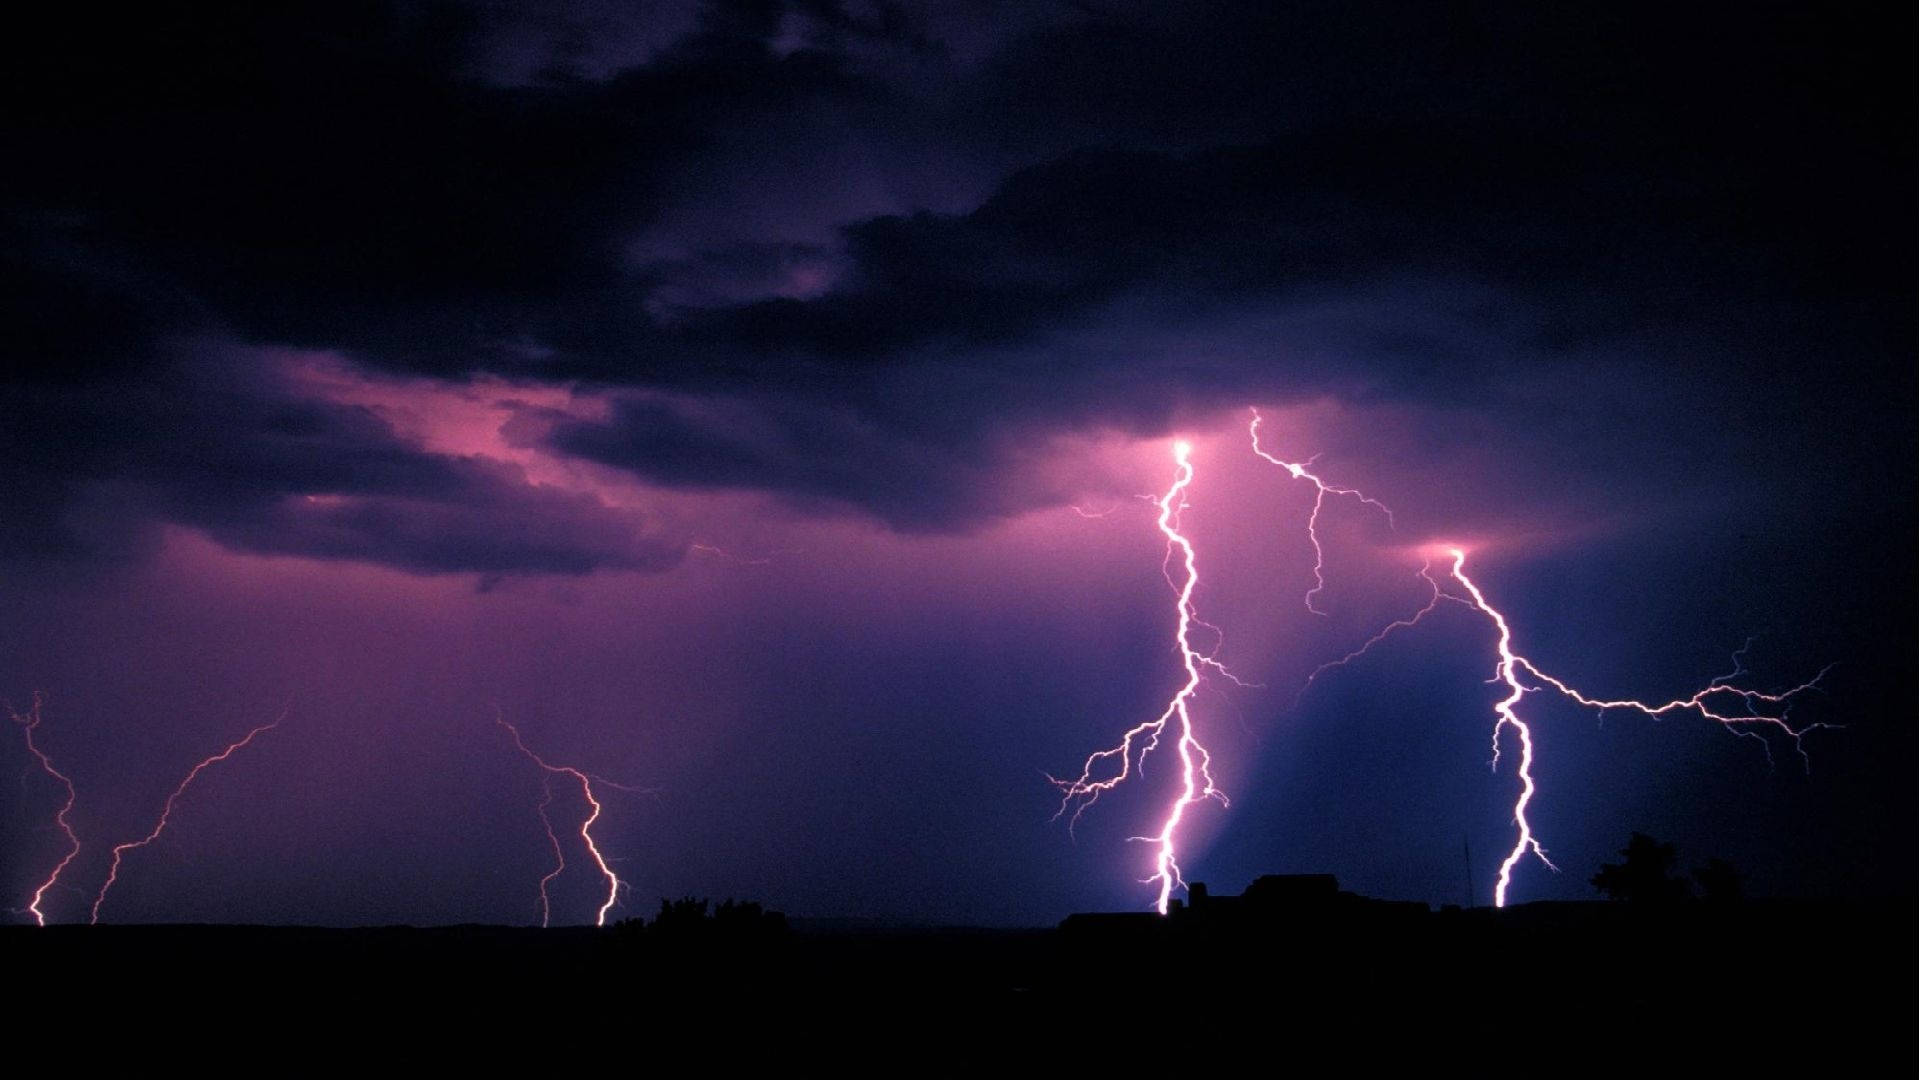 Awesome 42 Storm Wallpapers | HD Widescreen Backgrounds HBC333 com